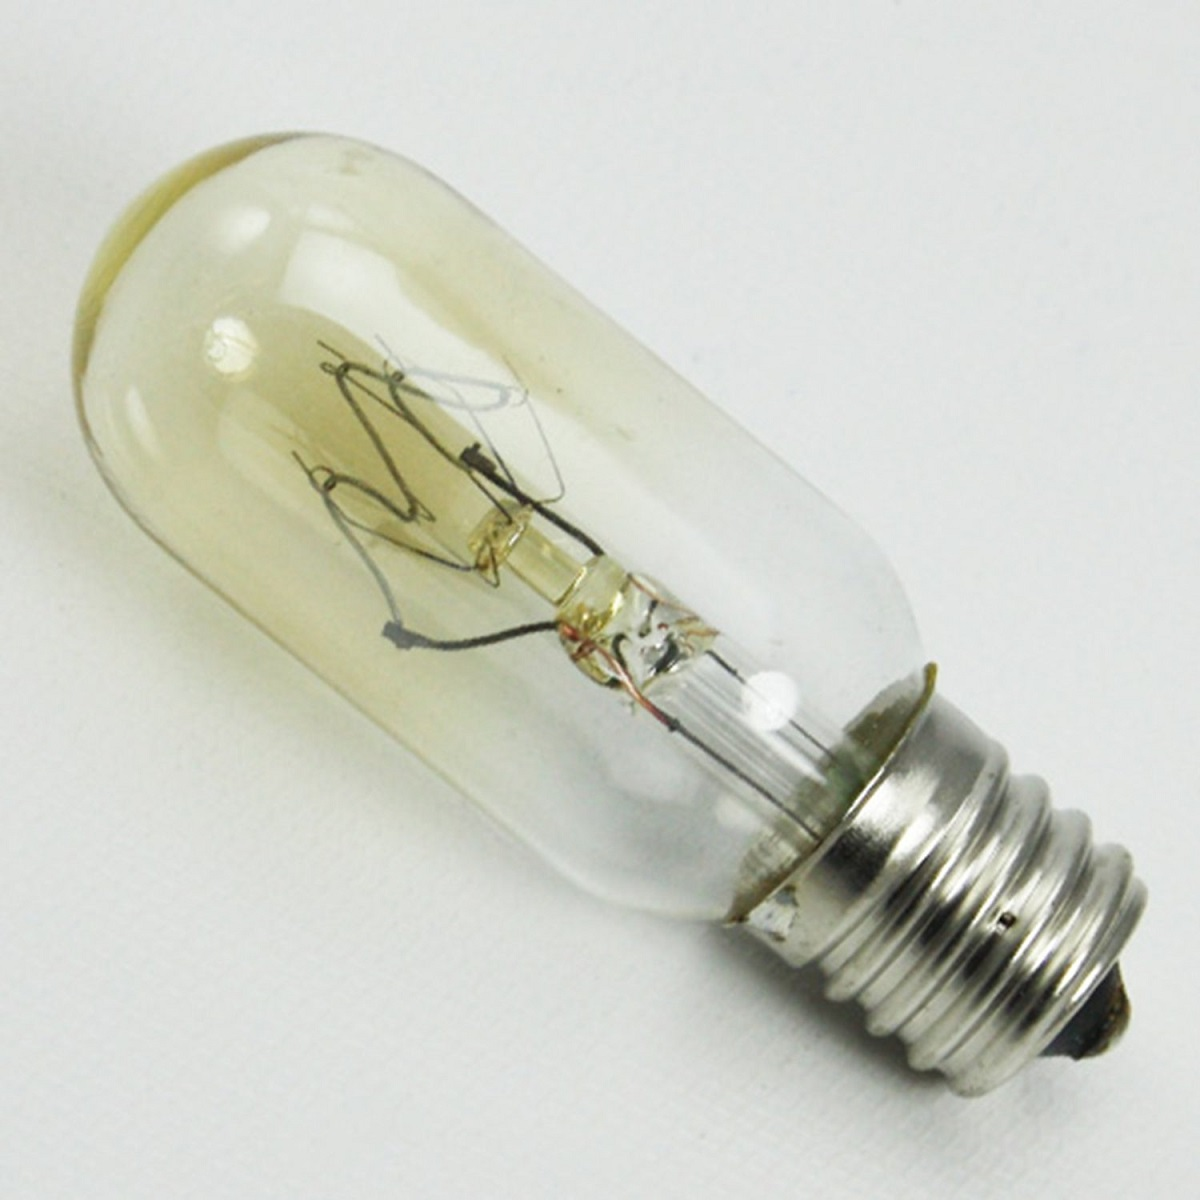 Wb36x10003 Microwave Light Bulb 130v 40w For Ge